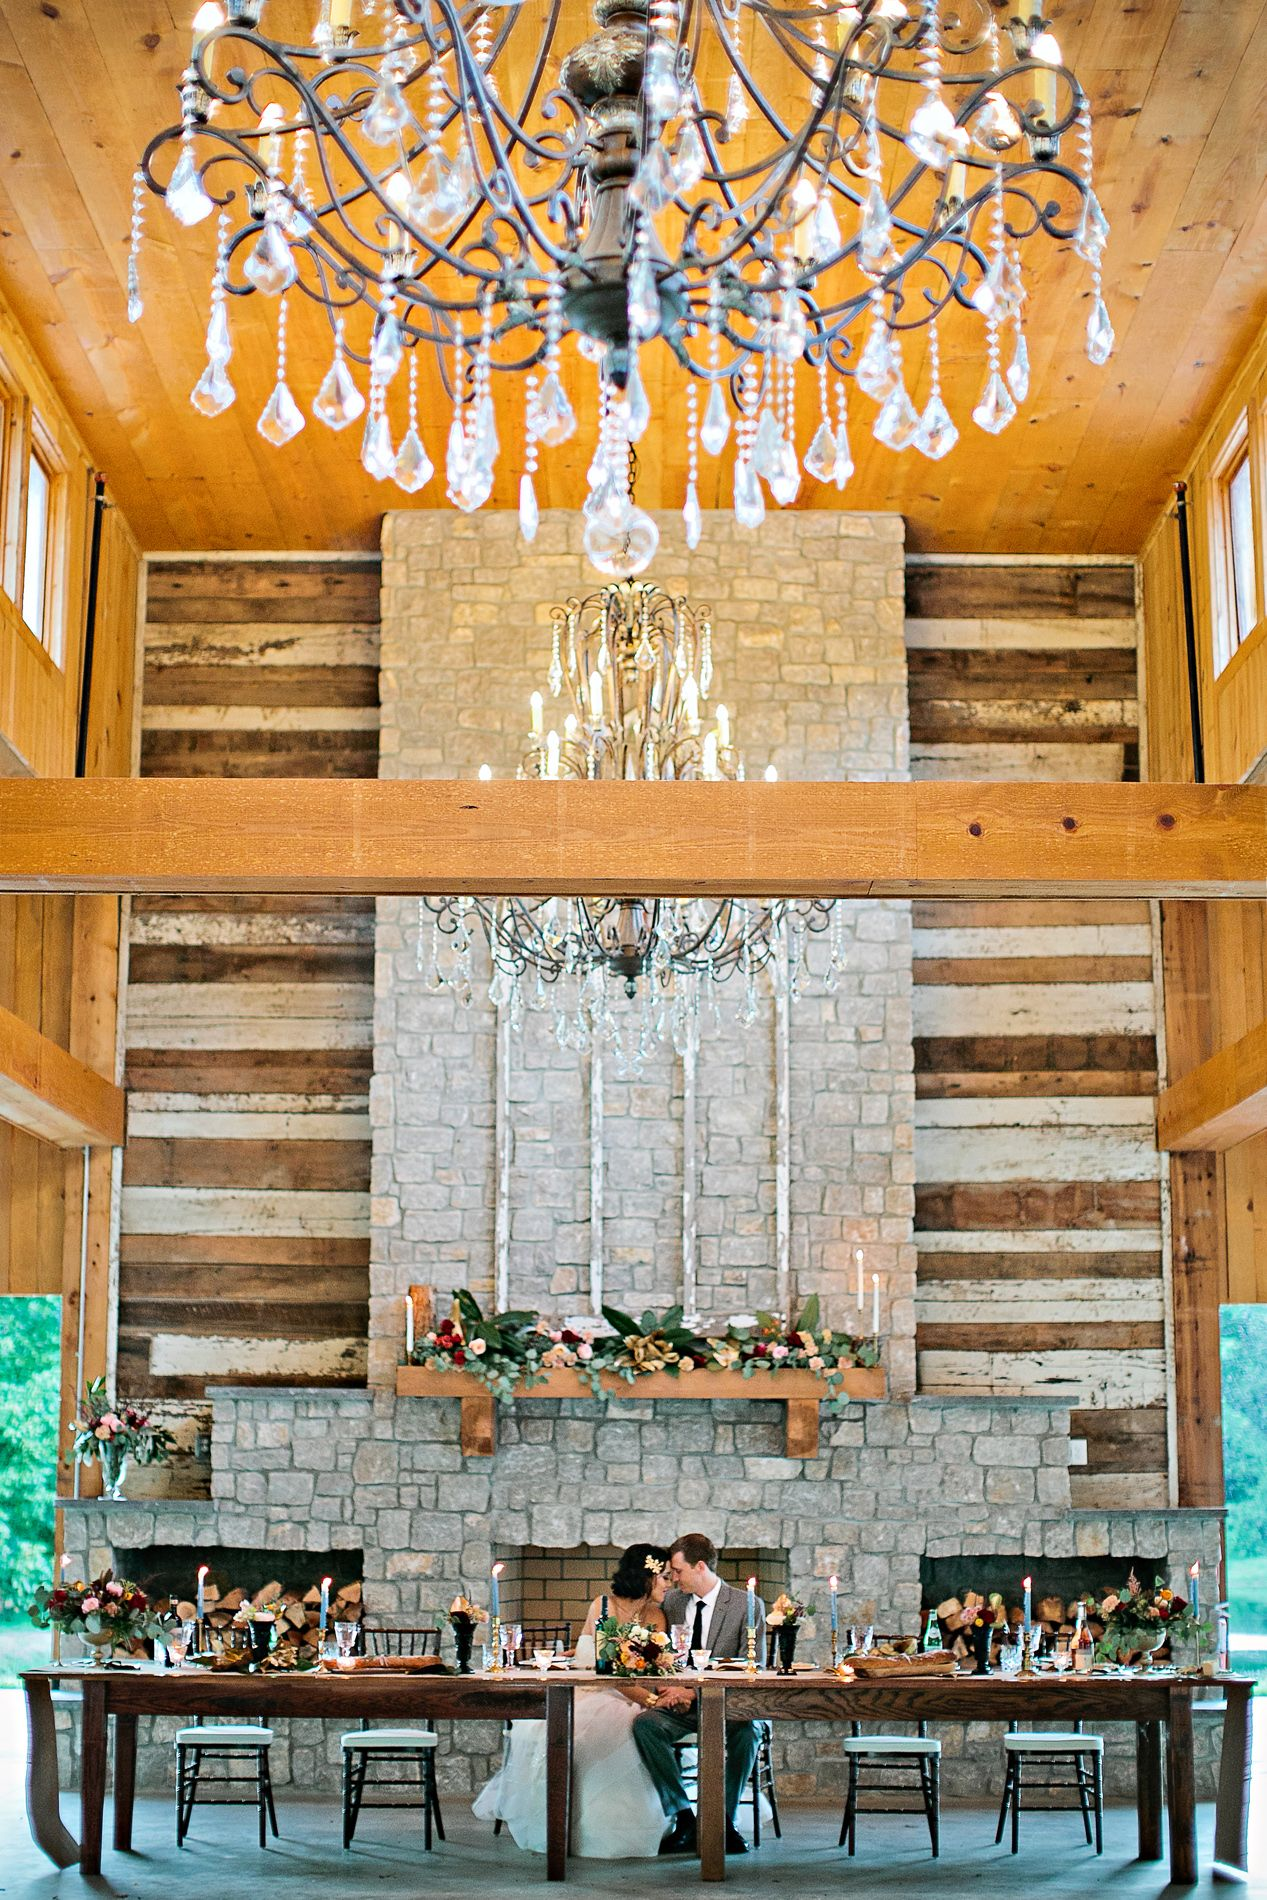 Soaring ceilings, grand chandeliers, stacked stone fireplaces - just a few perfect touches. Photos: Kristyn Hogan | Venue: Homestead Manor | Styling: The Bride Room | Hair: Leslie Ellis | Makeup: Meg Boes | Floral: Amanda Jerkins Design